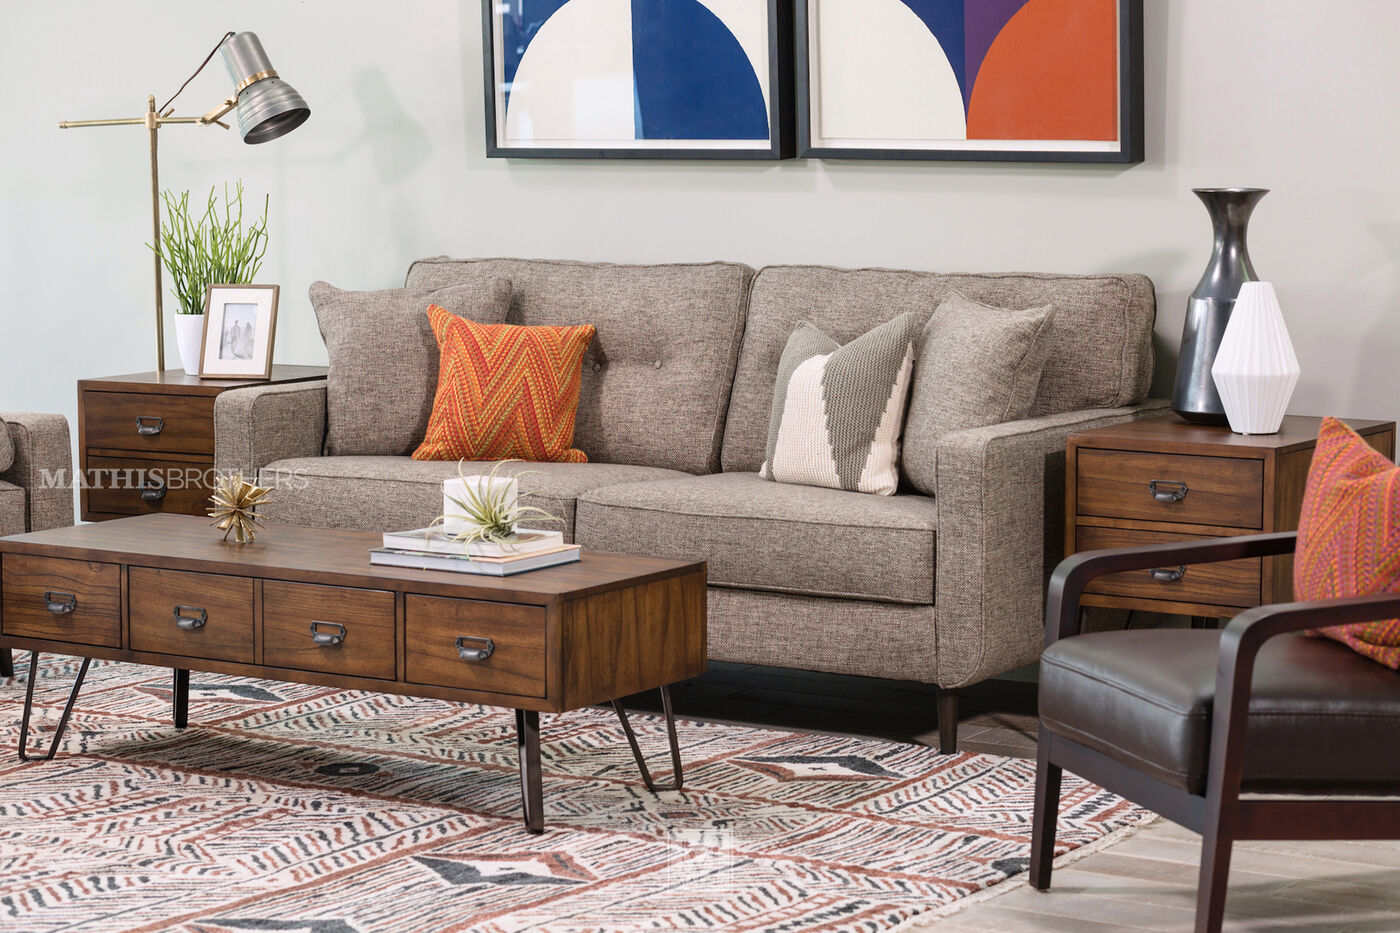 Modern Button Tufted 79 Sofa In Jute Mathis Brothers